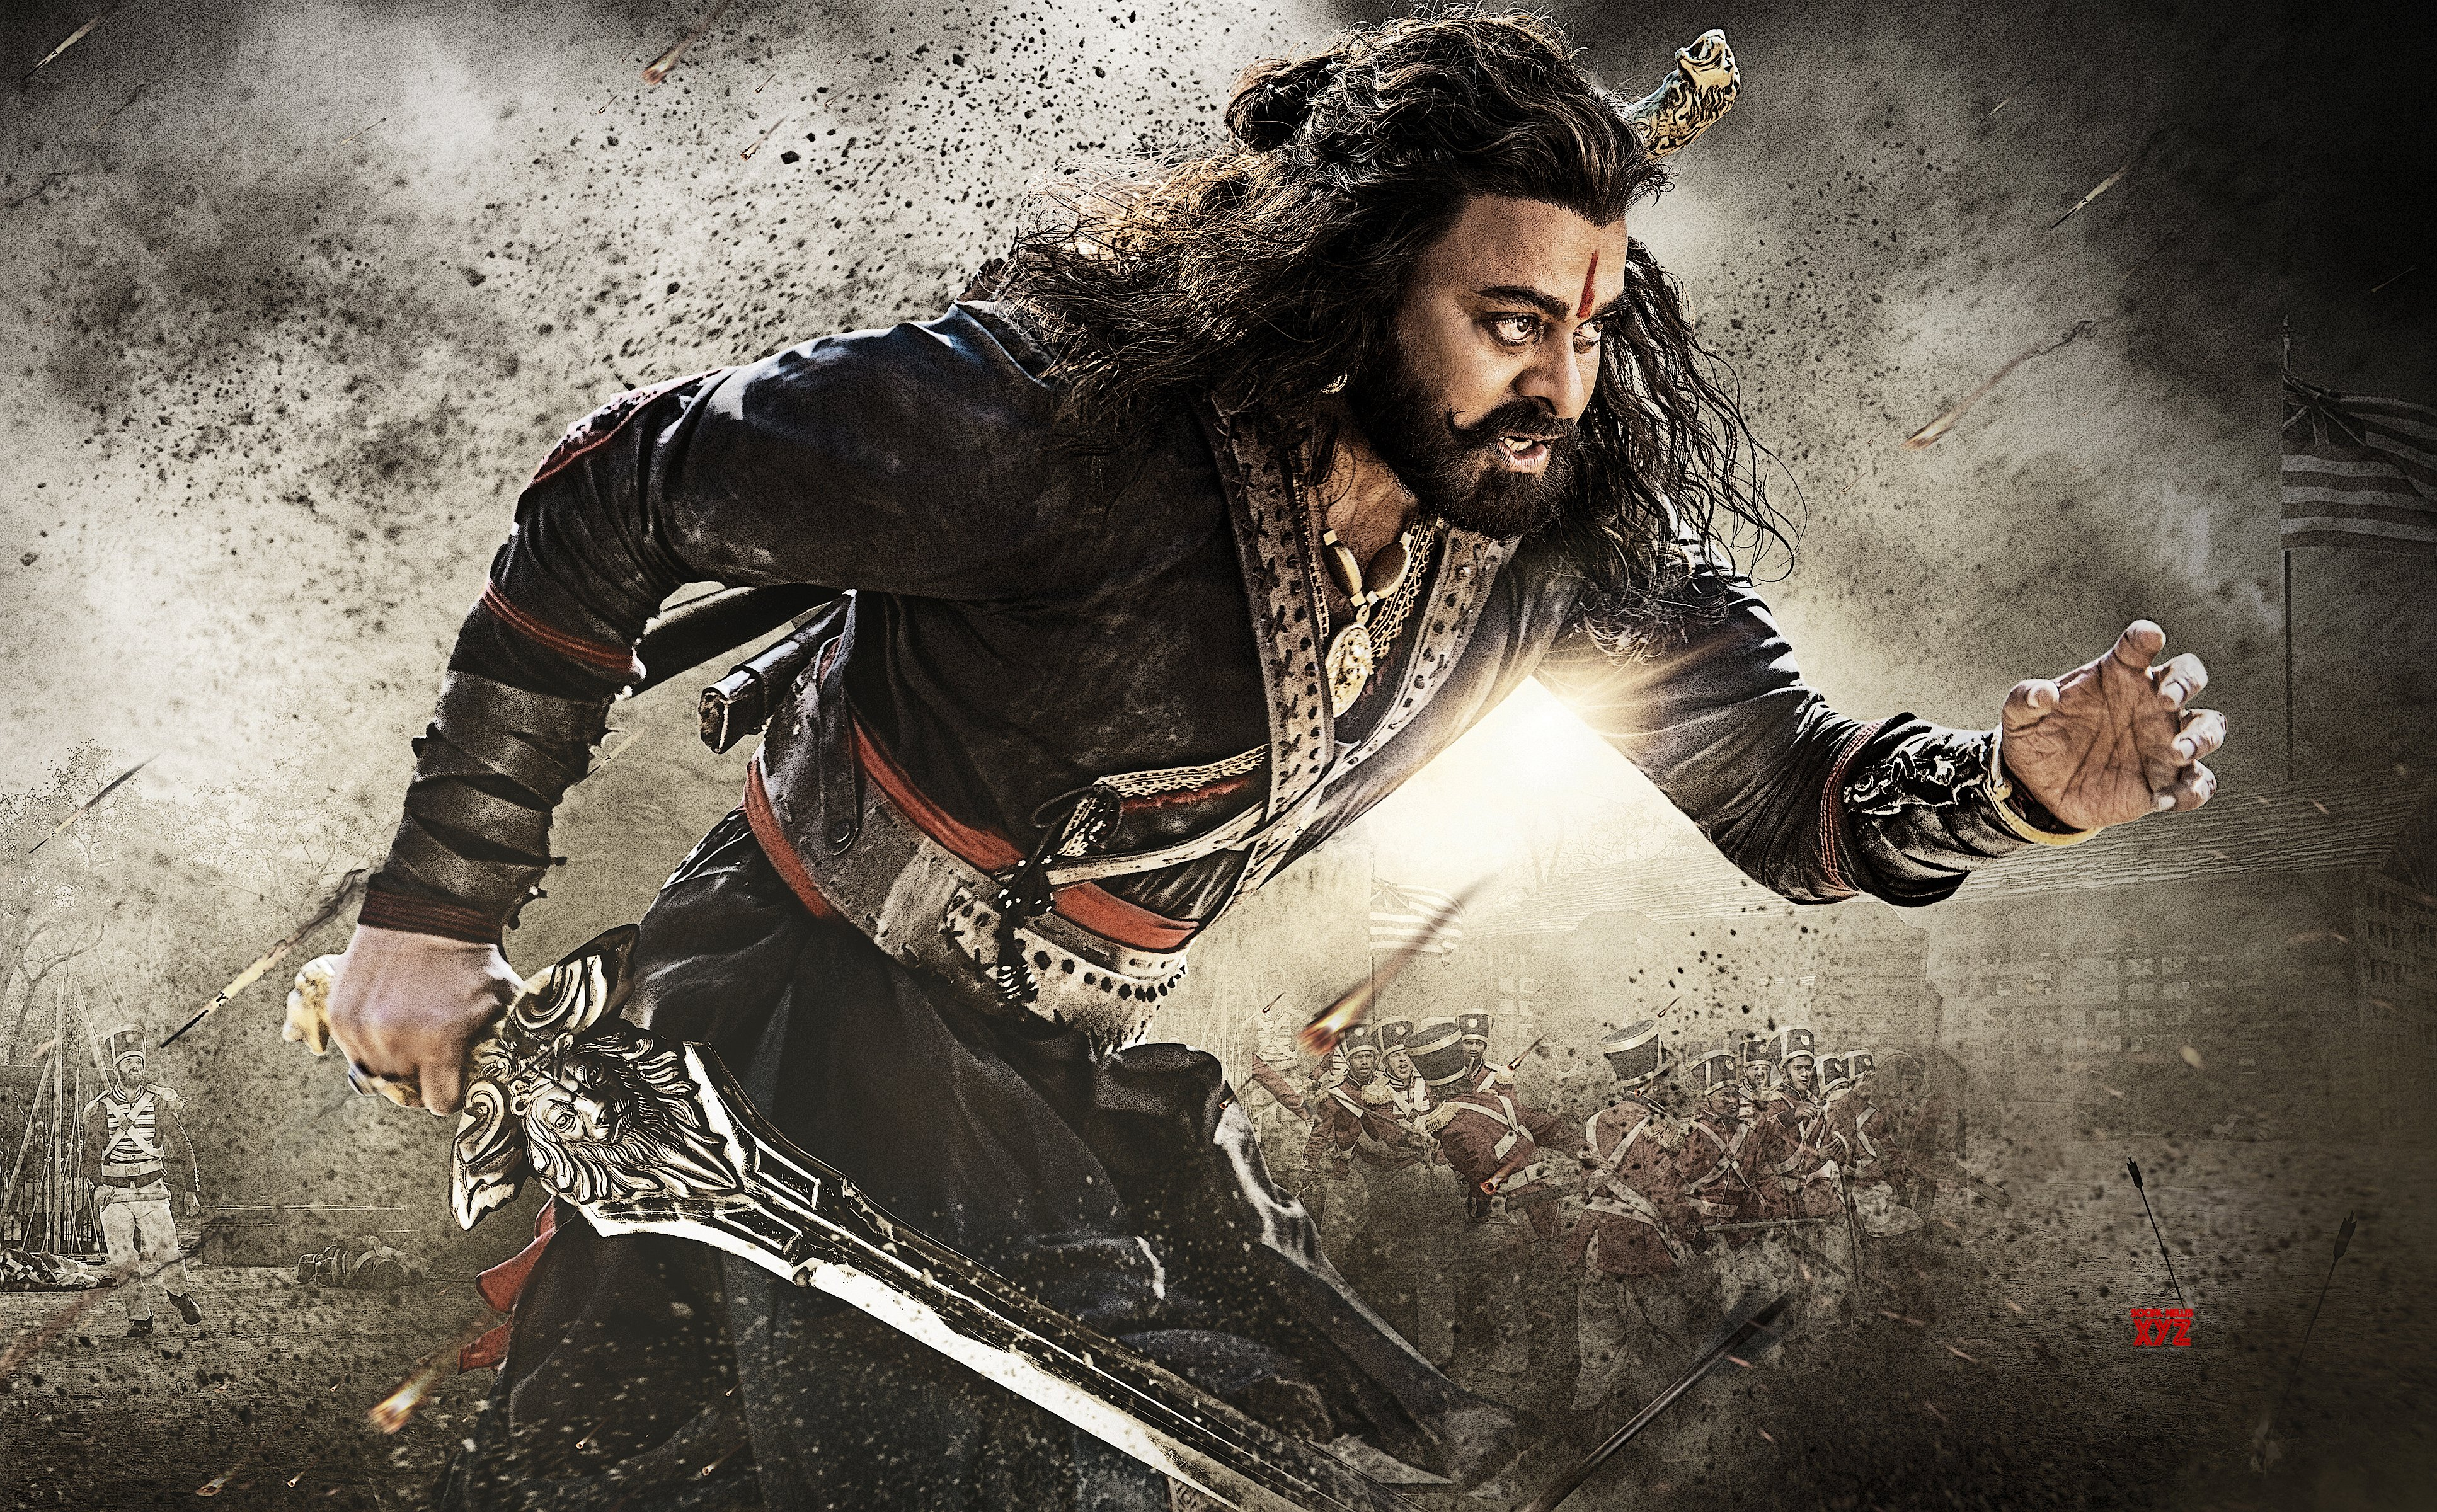 Sye Raa Narasimha Reddy movie grossed 11.5 crores with a share of 6.85 crores on Day 4 in AP/TS